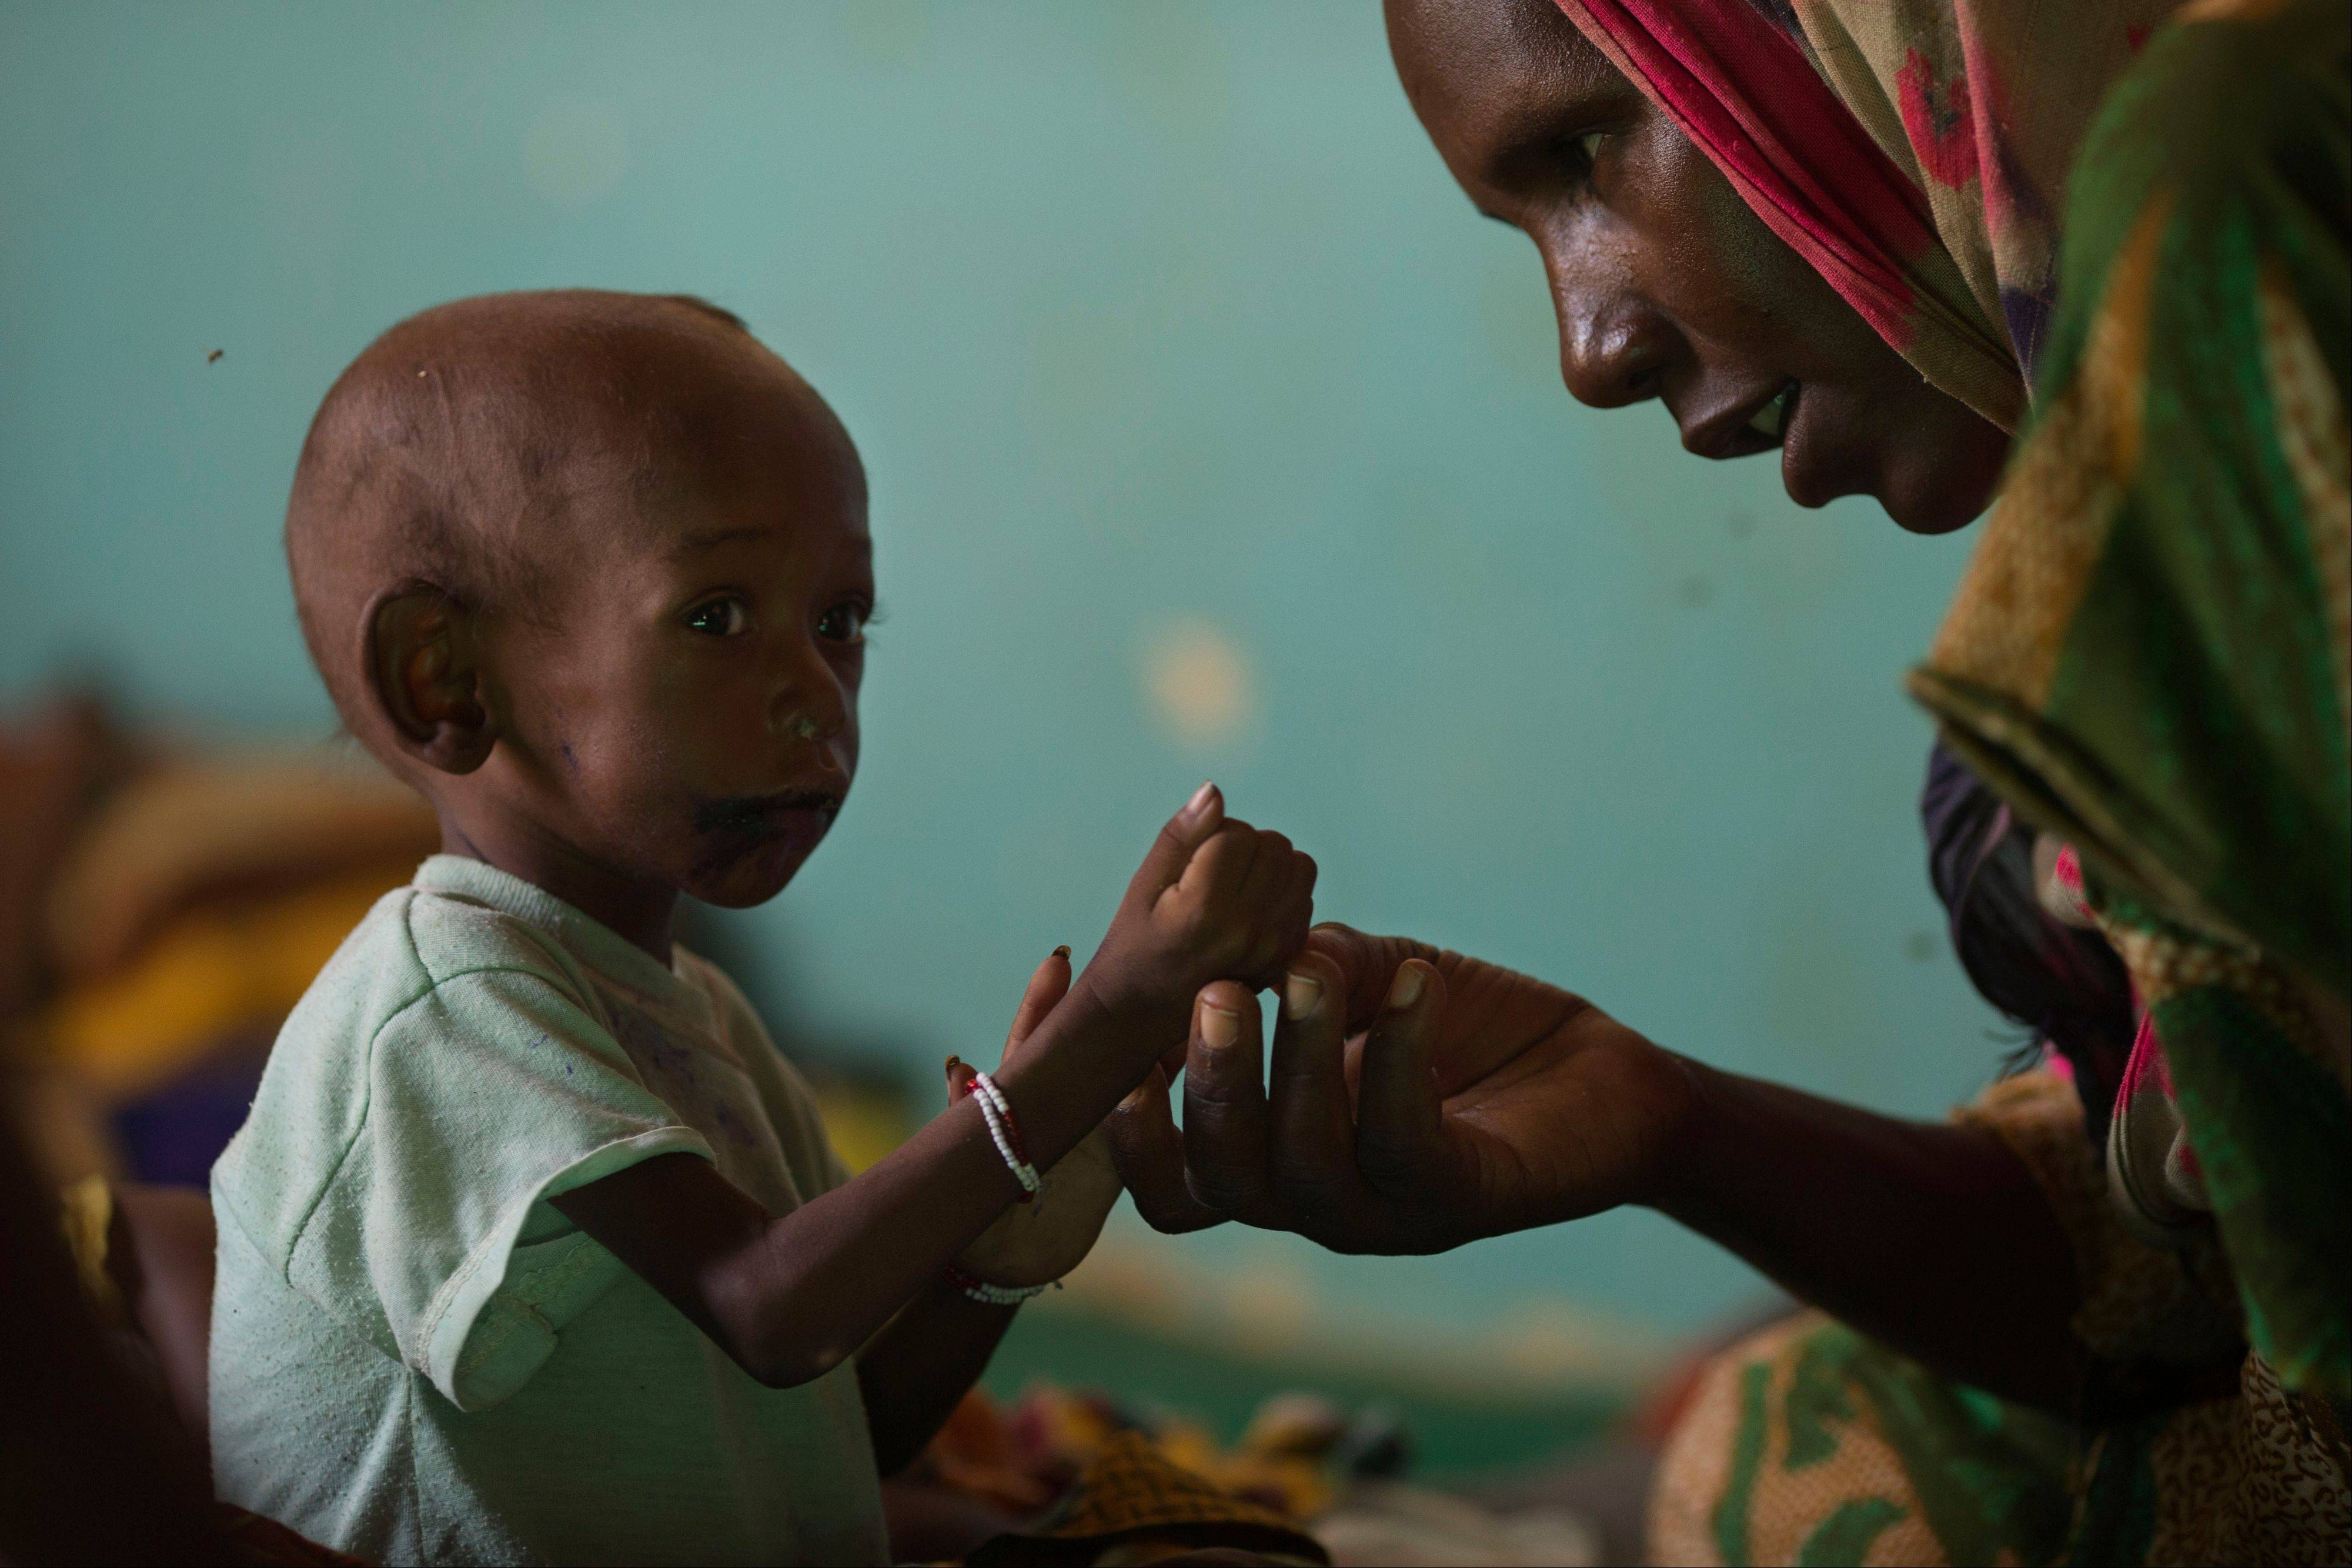 Zara Seid talks to her daughter Fatime Mahamat, 3, who is being treated for severe malnutrition at a nutritional health clinic run by Action Against Hunger with the support of UNICEF, in Mao, Chad. In this Sahel nation, childhood malnutrition and related mortality persist at alarming rates, despite the fact that many affected families live within a day's journey of internationally-funded nutrition clinics.